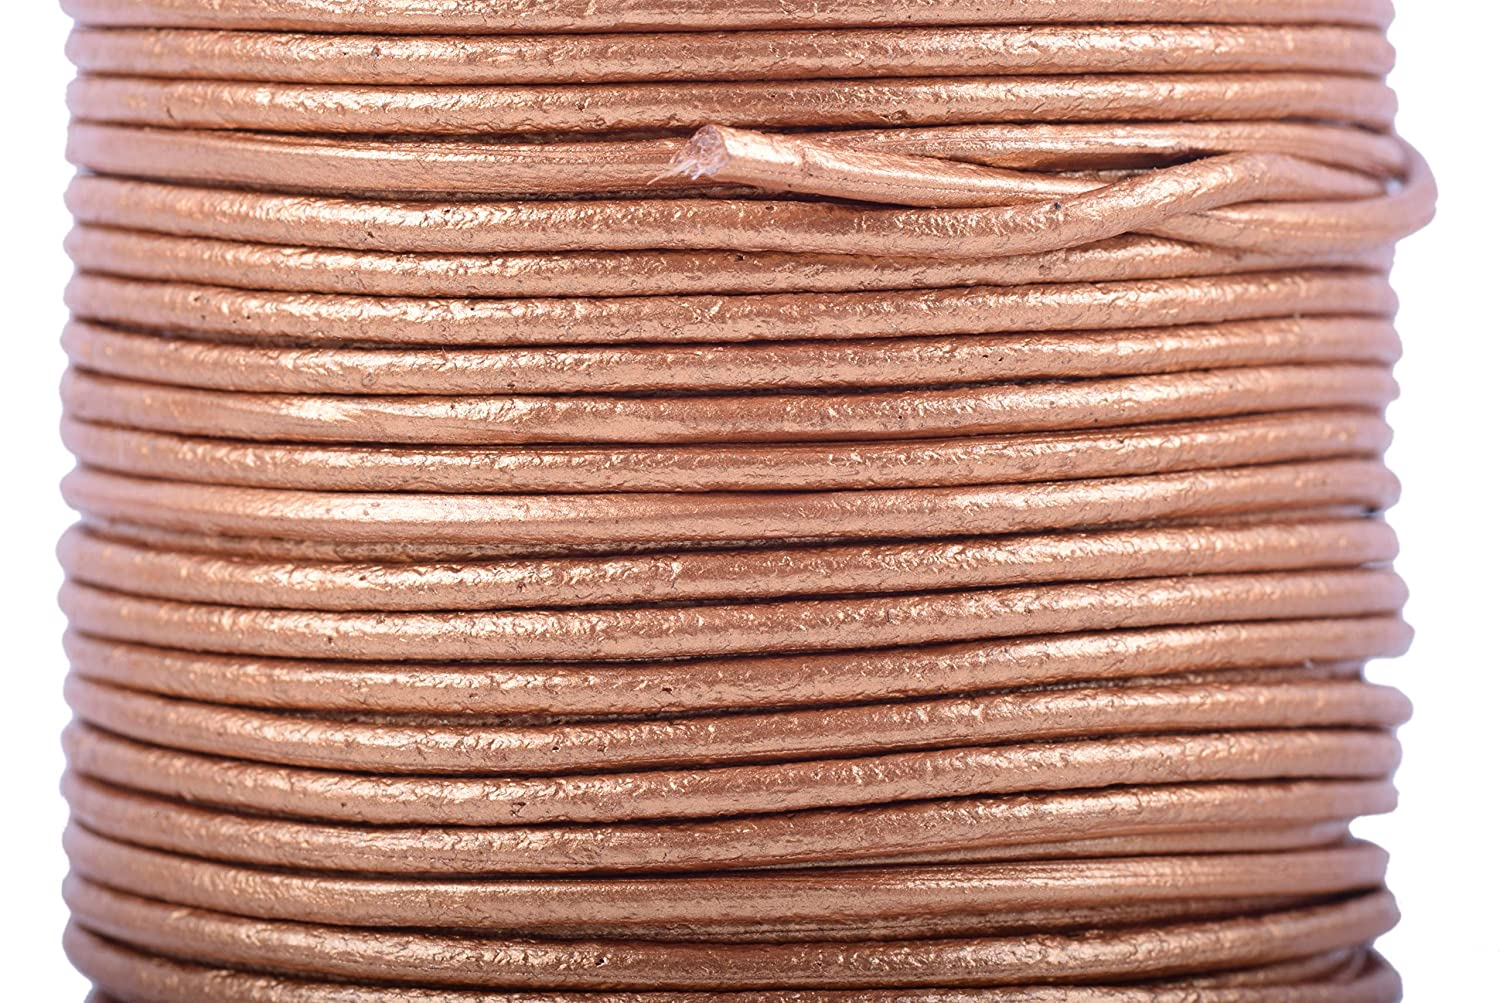 KONMAY 25 Yards Solid Round 2.0mm Distressed Brown Genuine/Real Leather Cord Braiding String (2.0mm, Distressed Brown) KONAMY KMRL020DB